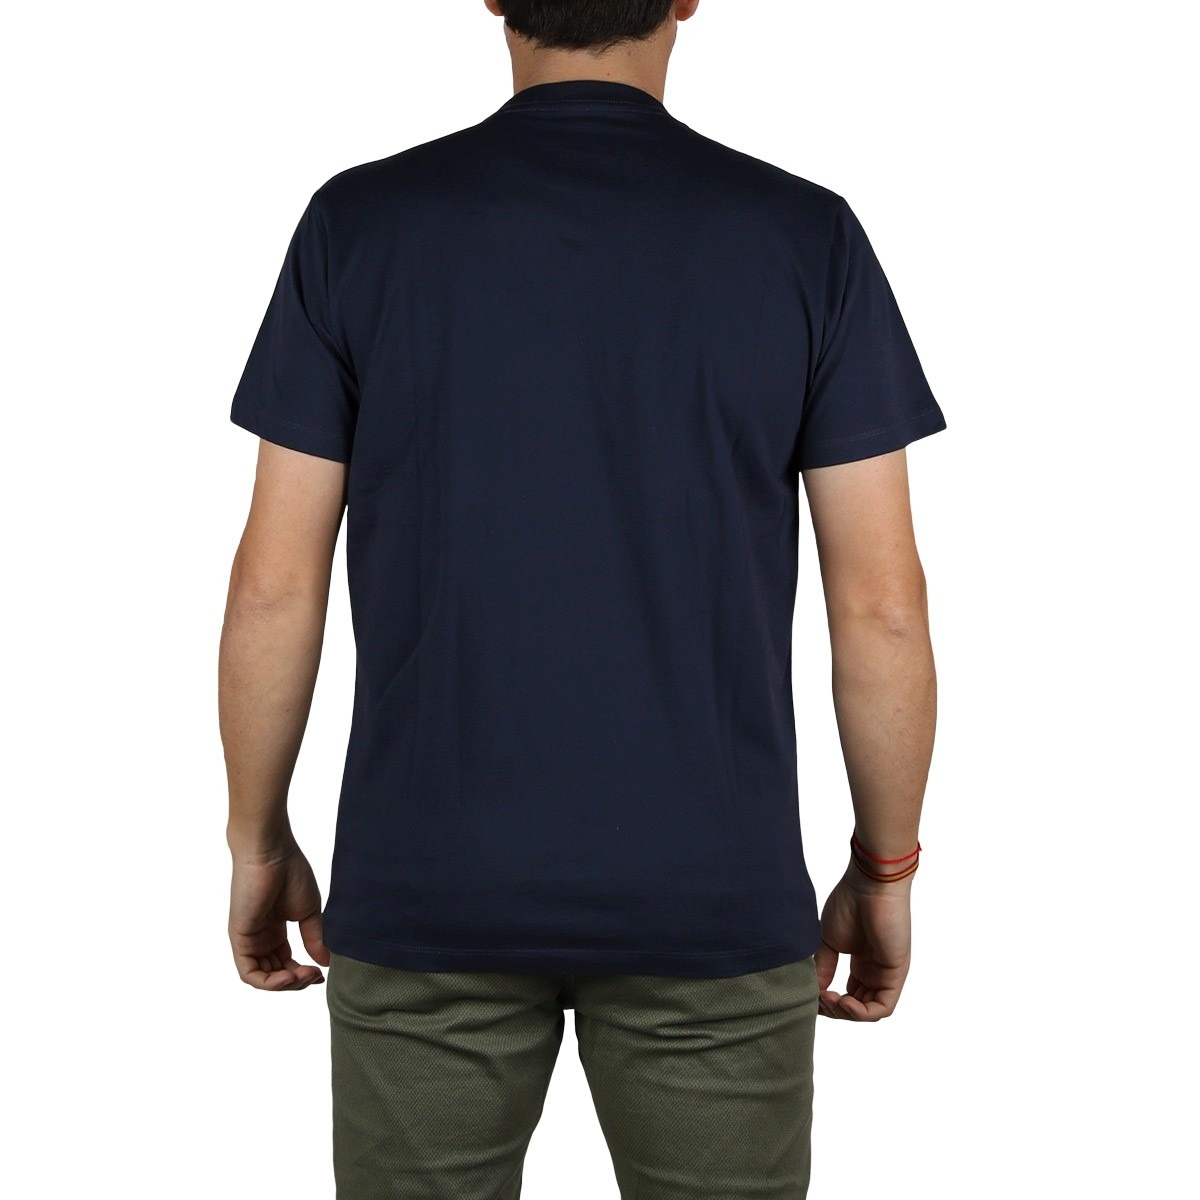 Pepe Jeans Camiseta Theo Old Navy Archive Azul Marino Hombre